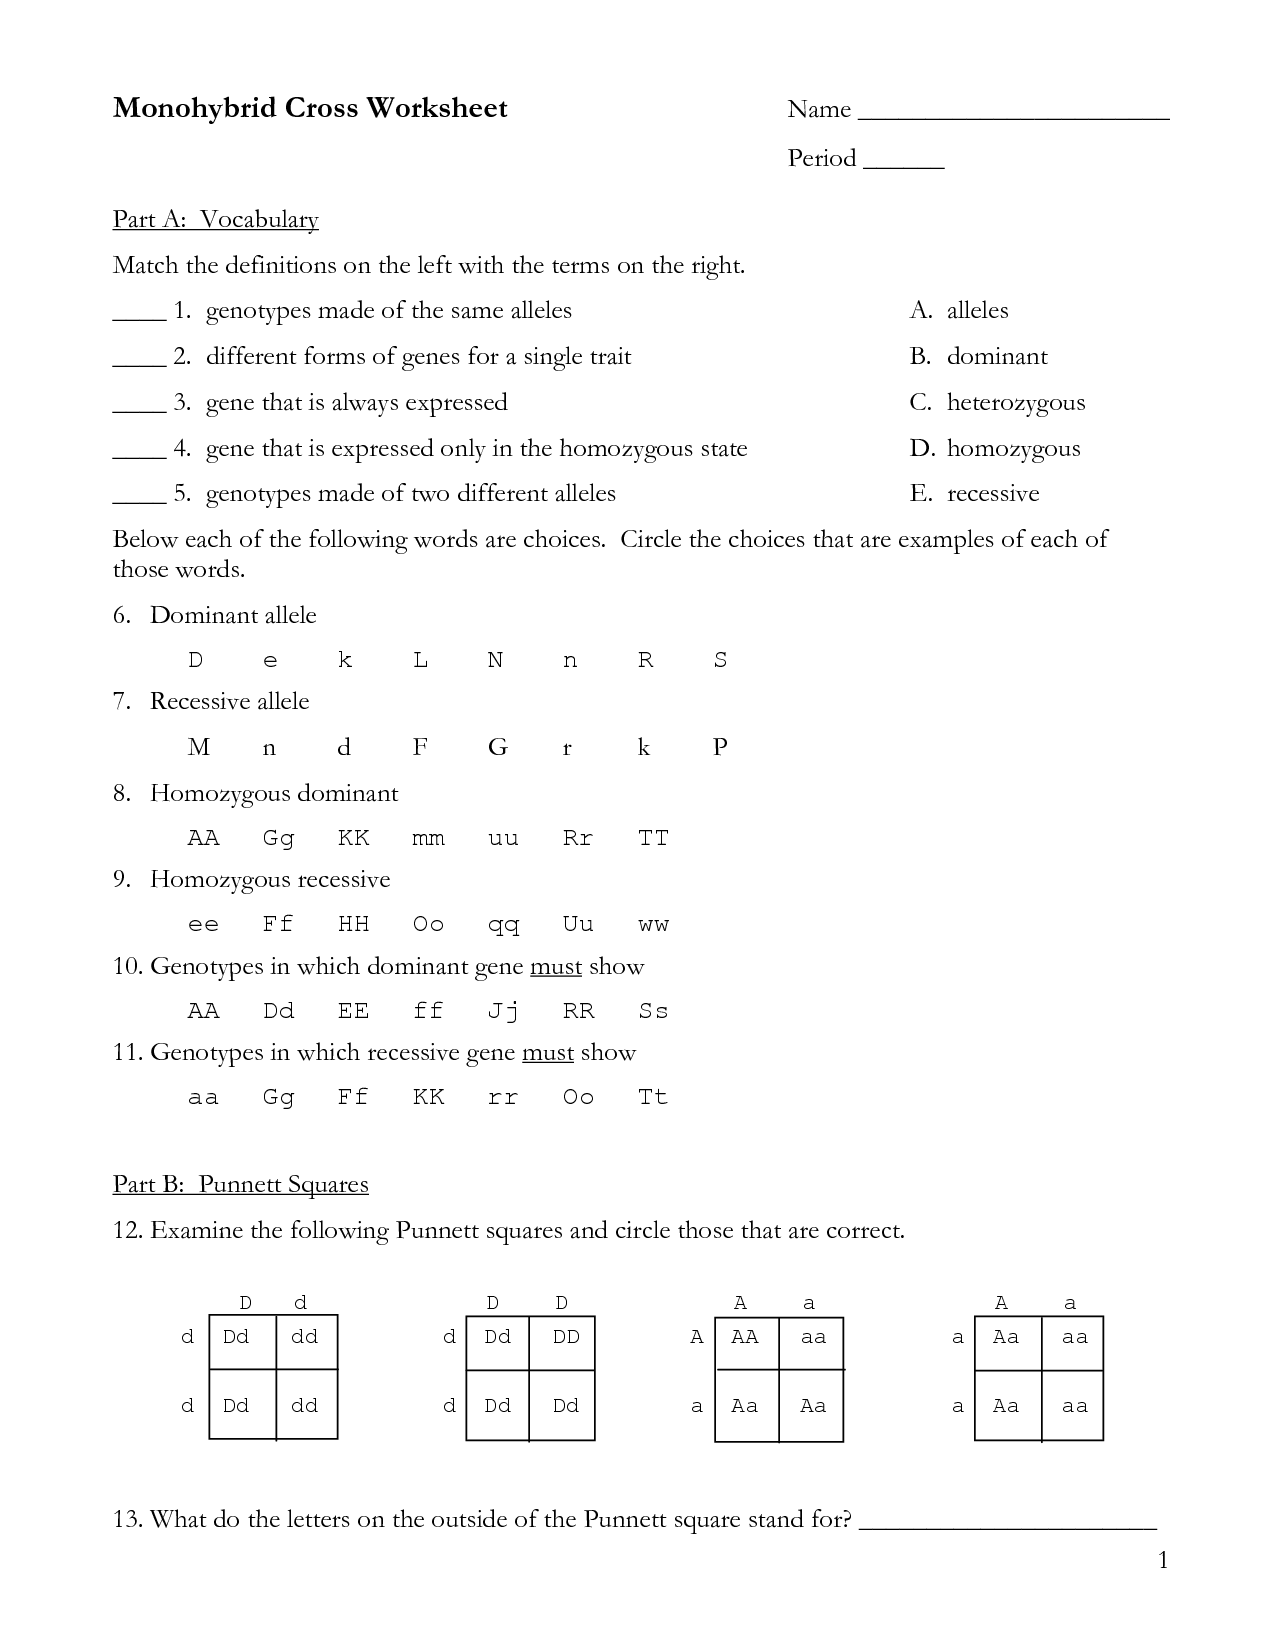 14 Best Images Of Genetics Problems Worksheet With Answer Keys